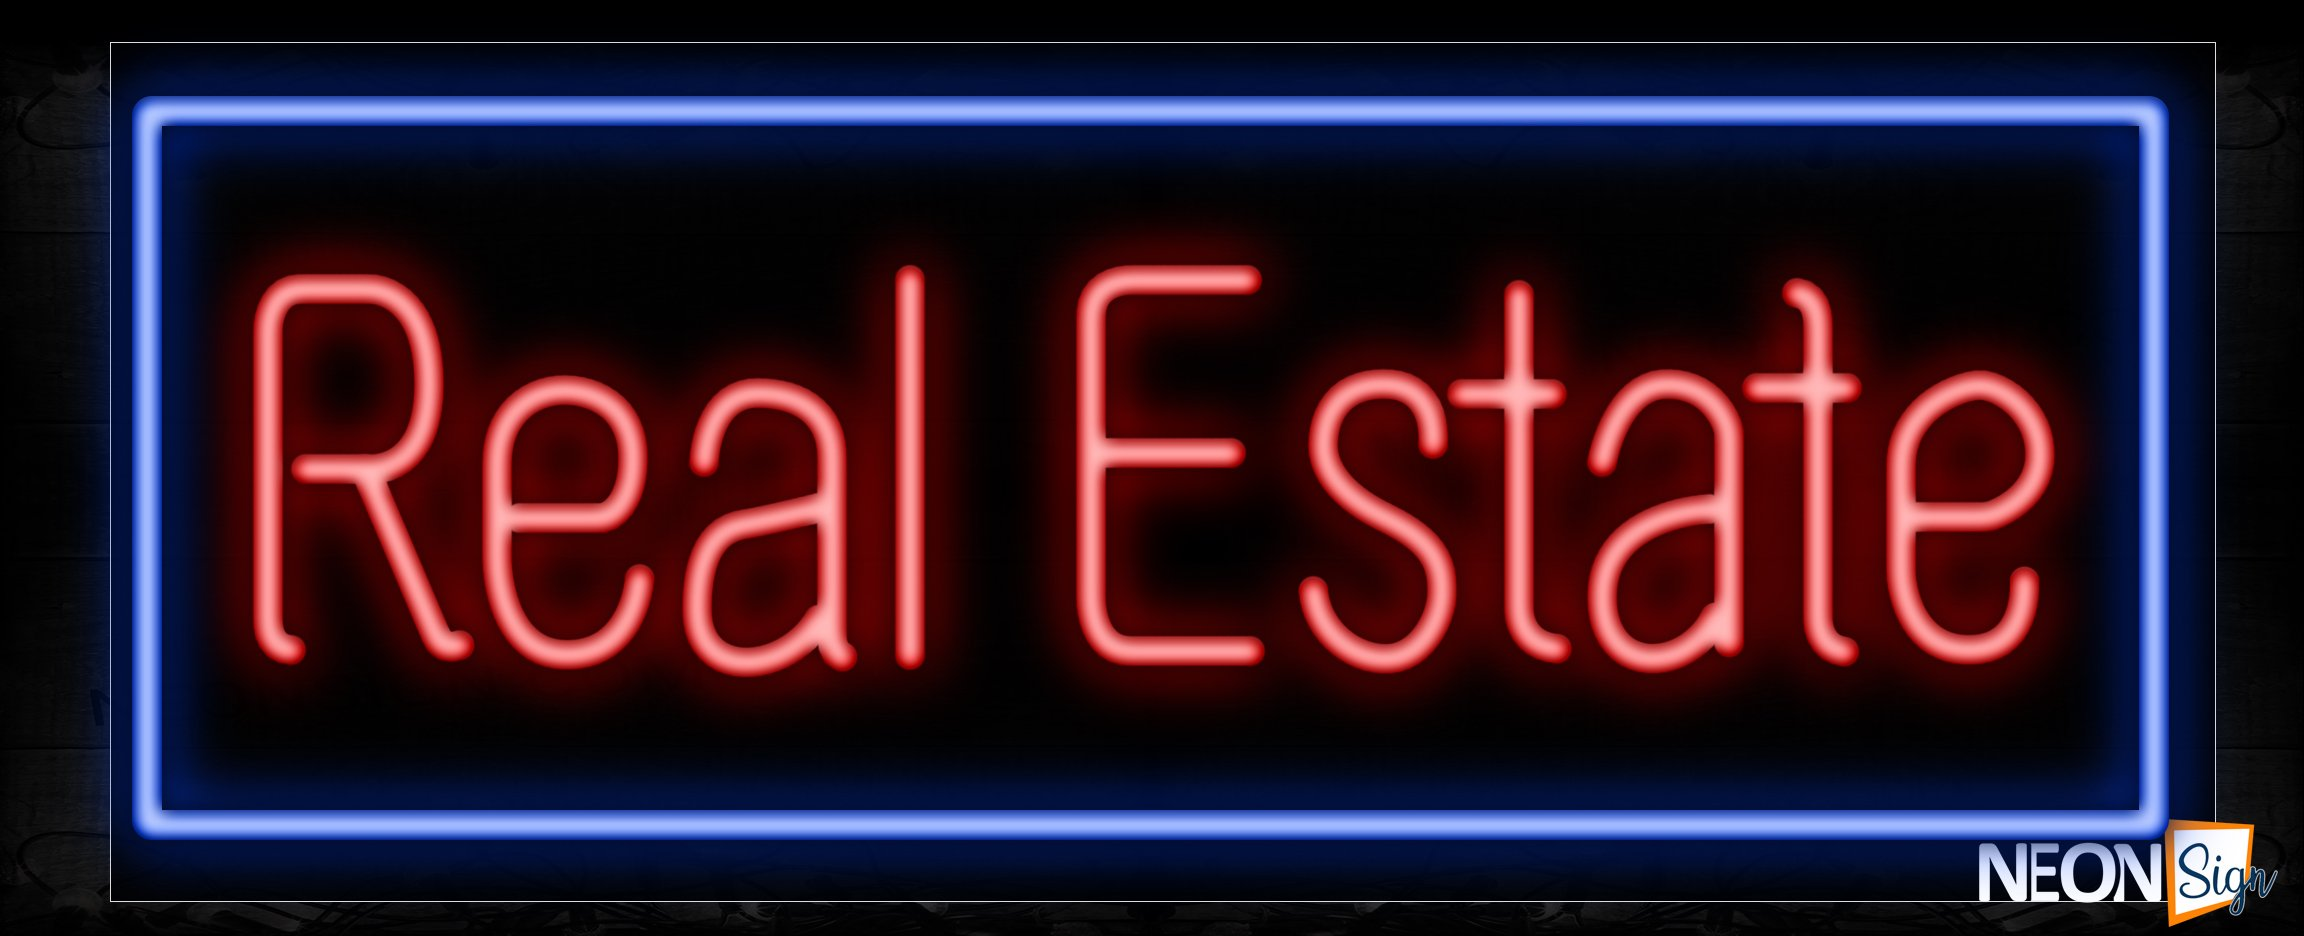 Image of 10614 Real Estate with blue border Neon Sign_13x32 Black Backing